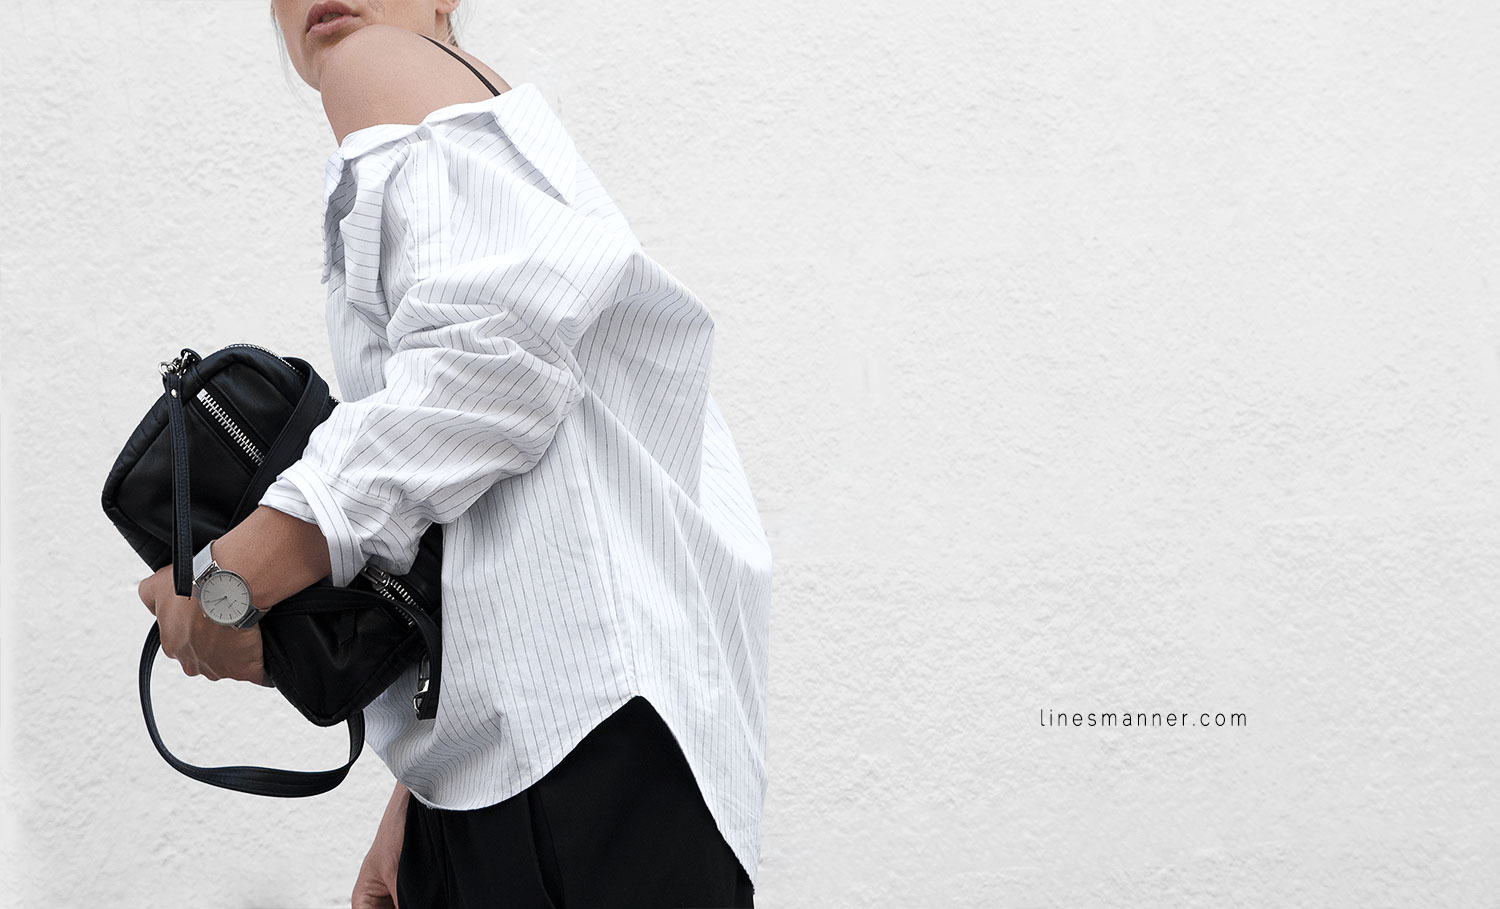 Lines-Manner-Simplicity-Off_shoulder-Monochrome-Noway_Monday-Details-Edgy6Backward-Sleek Statement_piece-Pinstripe-Business-Shirt-Minimal-Essentials-Outfit-Fashion-Minimal_fashion-Slides-Everlane-4